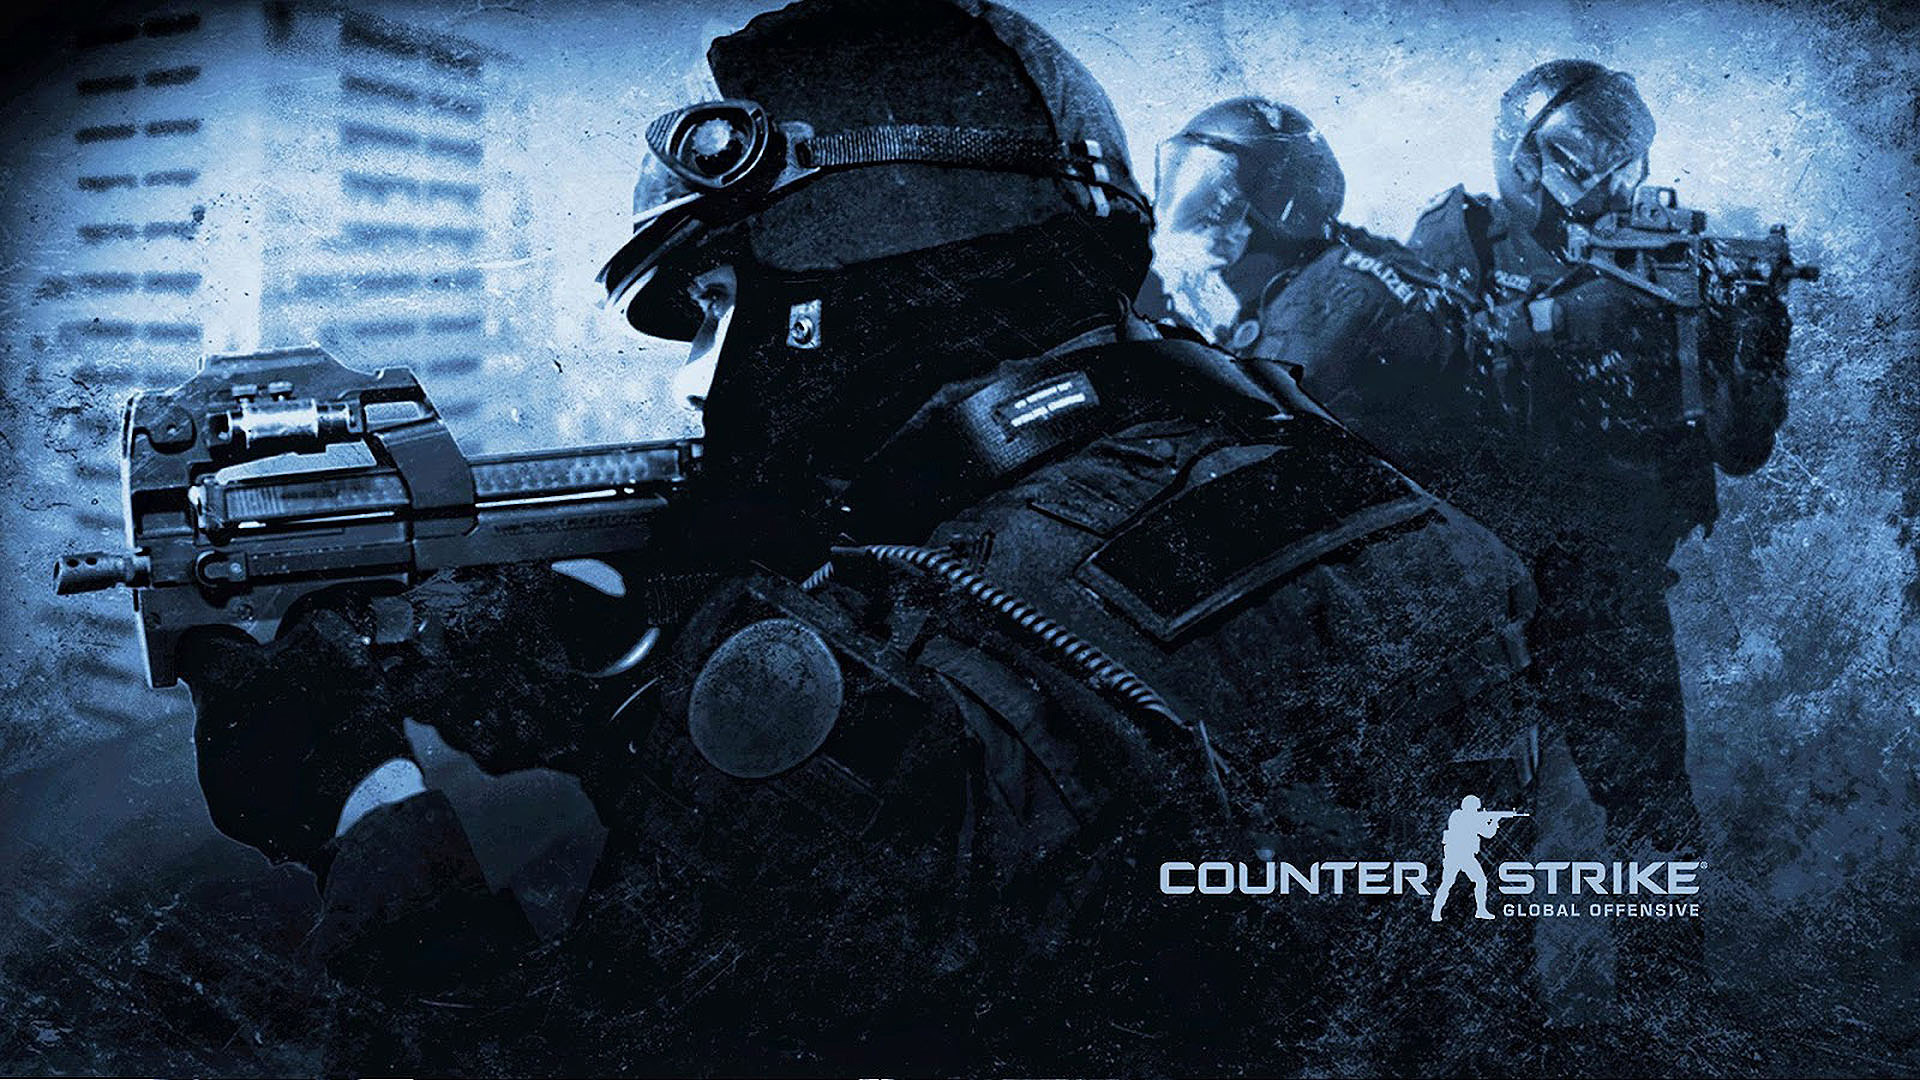 Free Counter-Strike: Global Offensive Wallpaper in 1920x1080